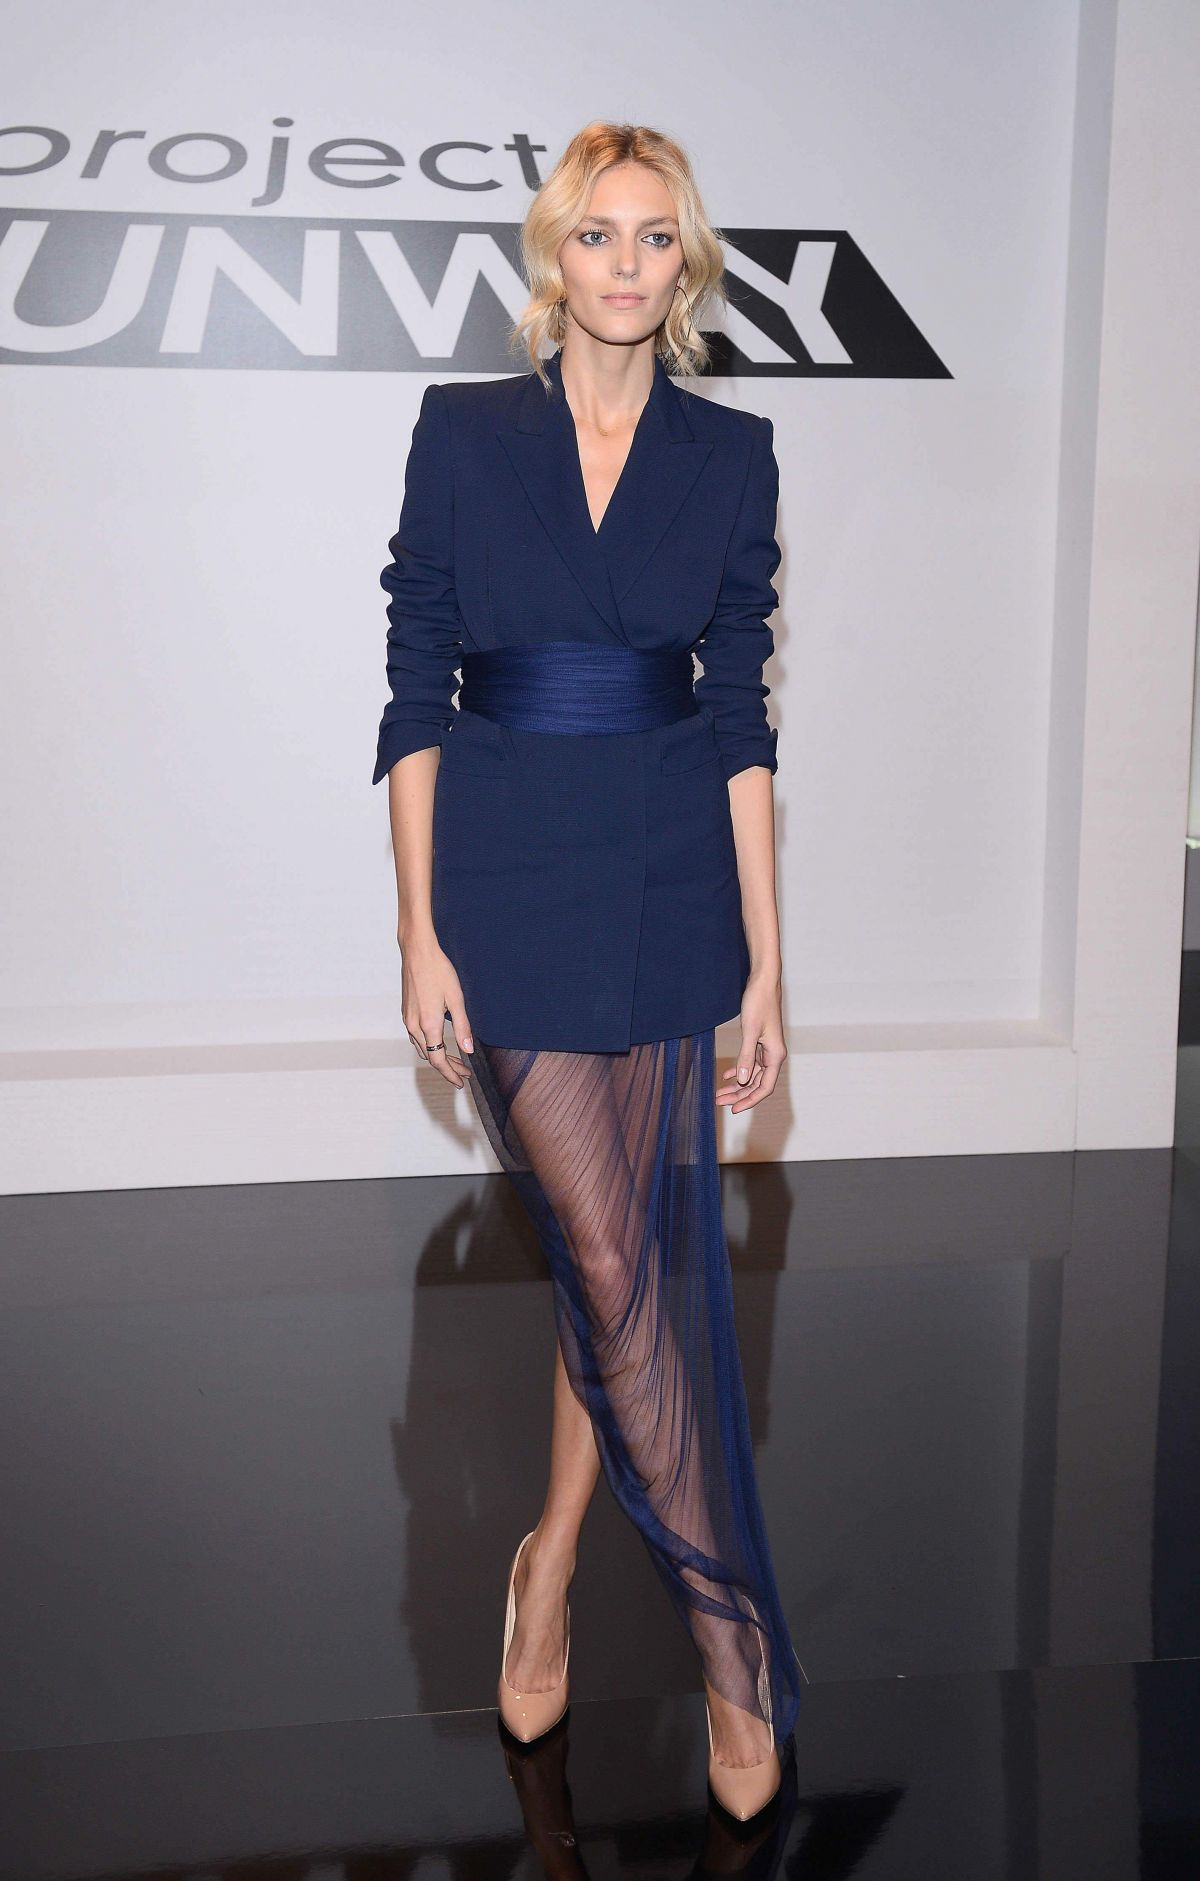 ANJA RUBIK at Project Runway Photocall in Warsaw